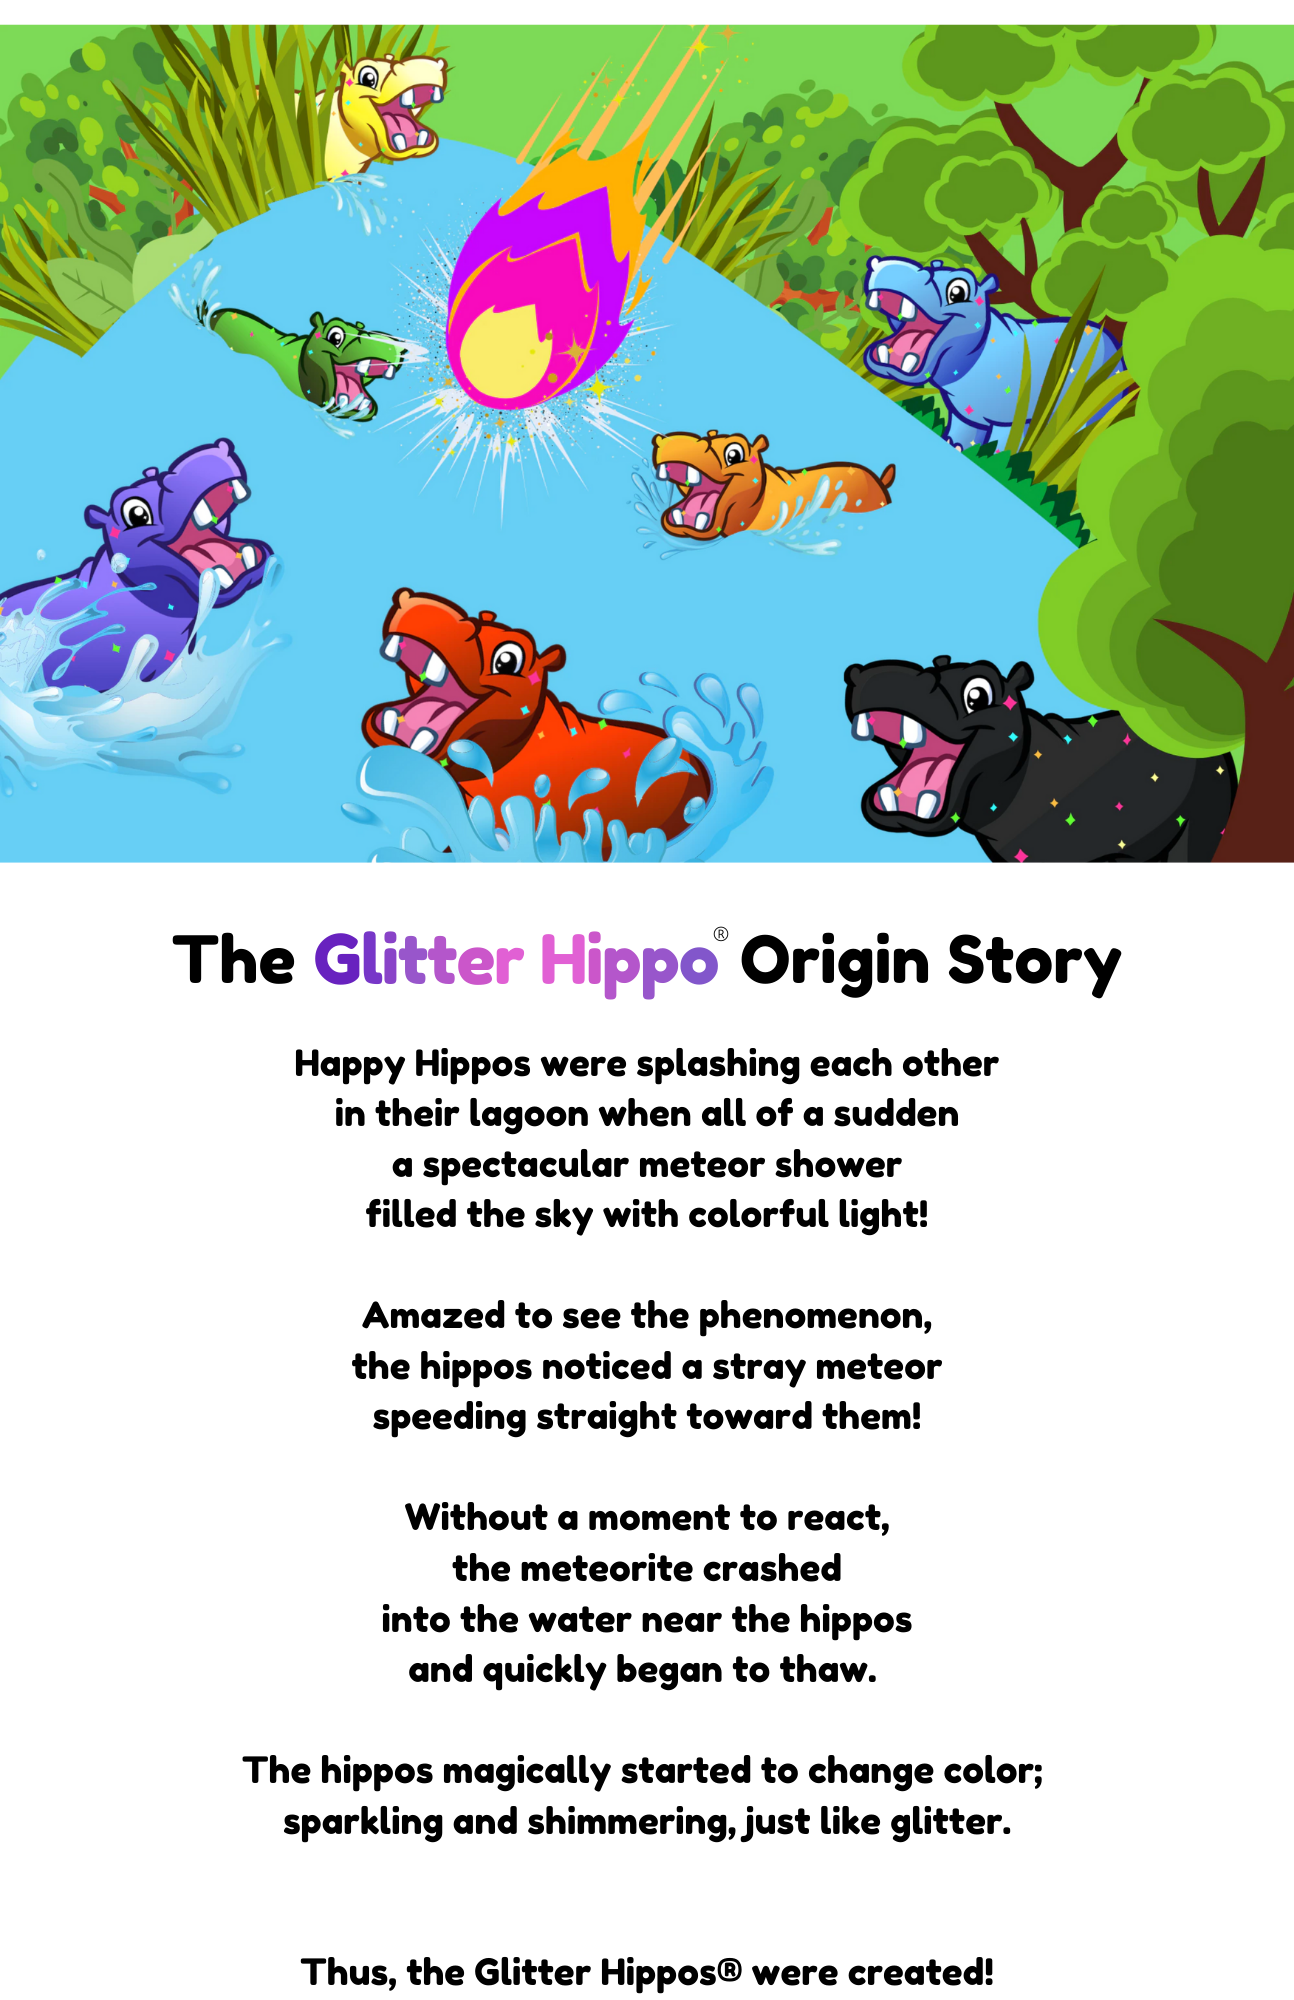 happy-hippos-were-splashing-each-other-in-their-lagoon-when-all-of-a-sudden-a-spectacular-meteor-shower-filled-the-sky-with-colorful-light-amazed-to-see-the-phenomenon-the-hippos-noticed-a-stray-meteor-speeding-str.png